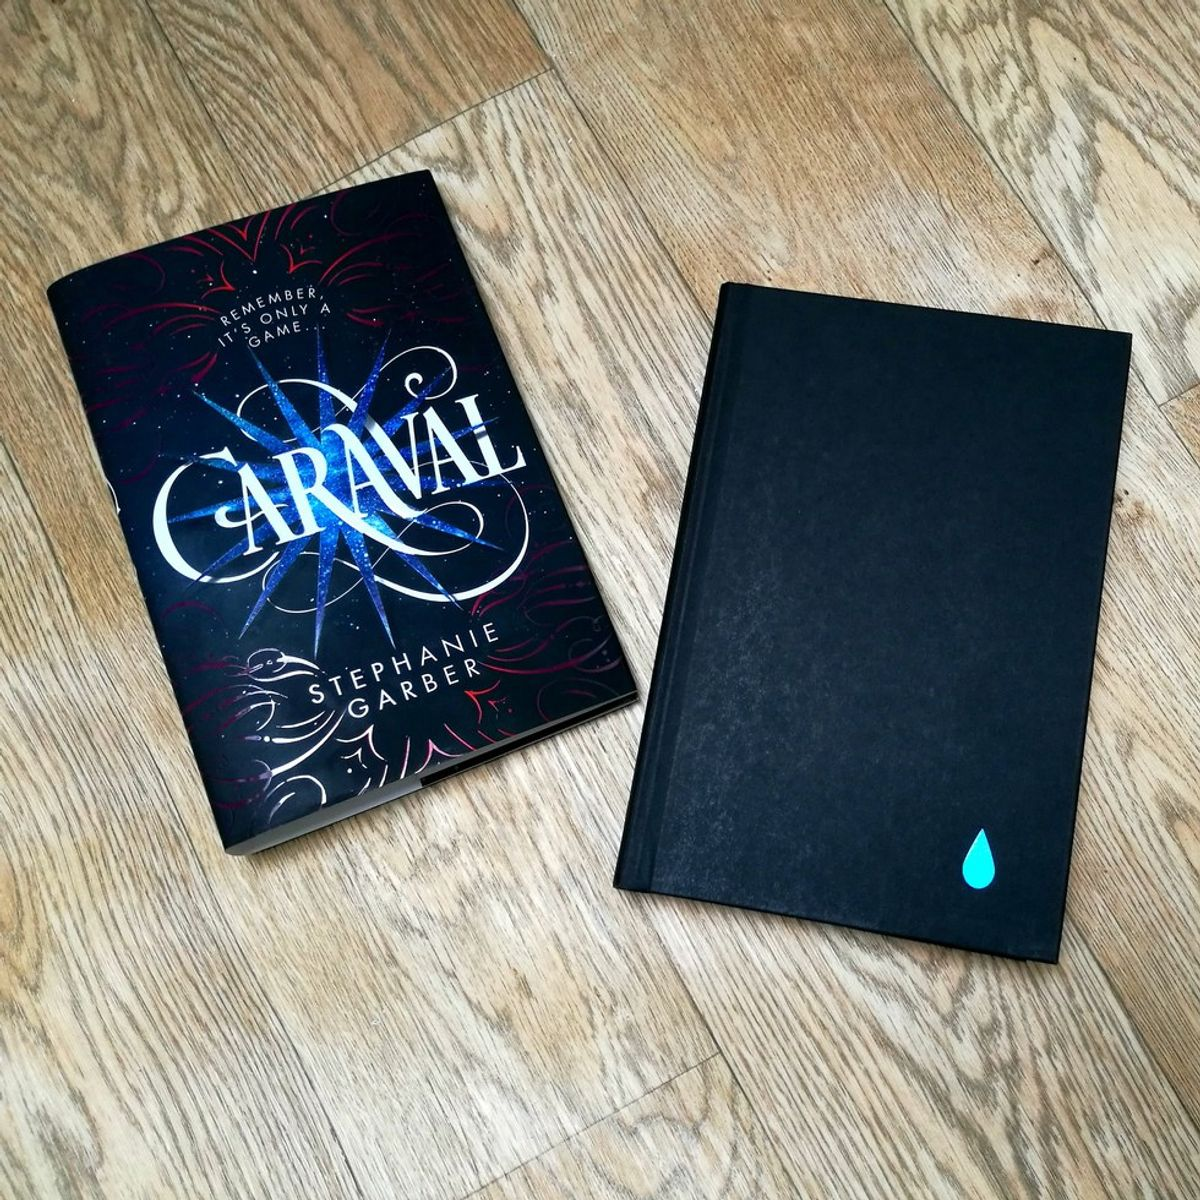 Review Of Caraval By Stephanie Garber